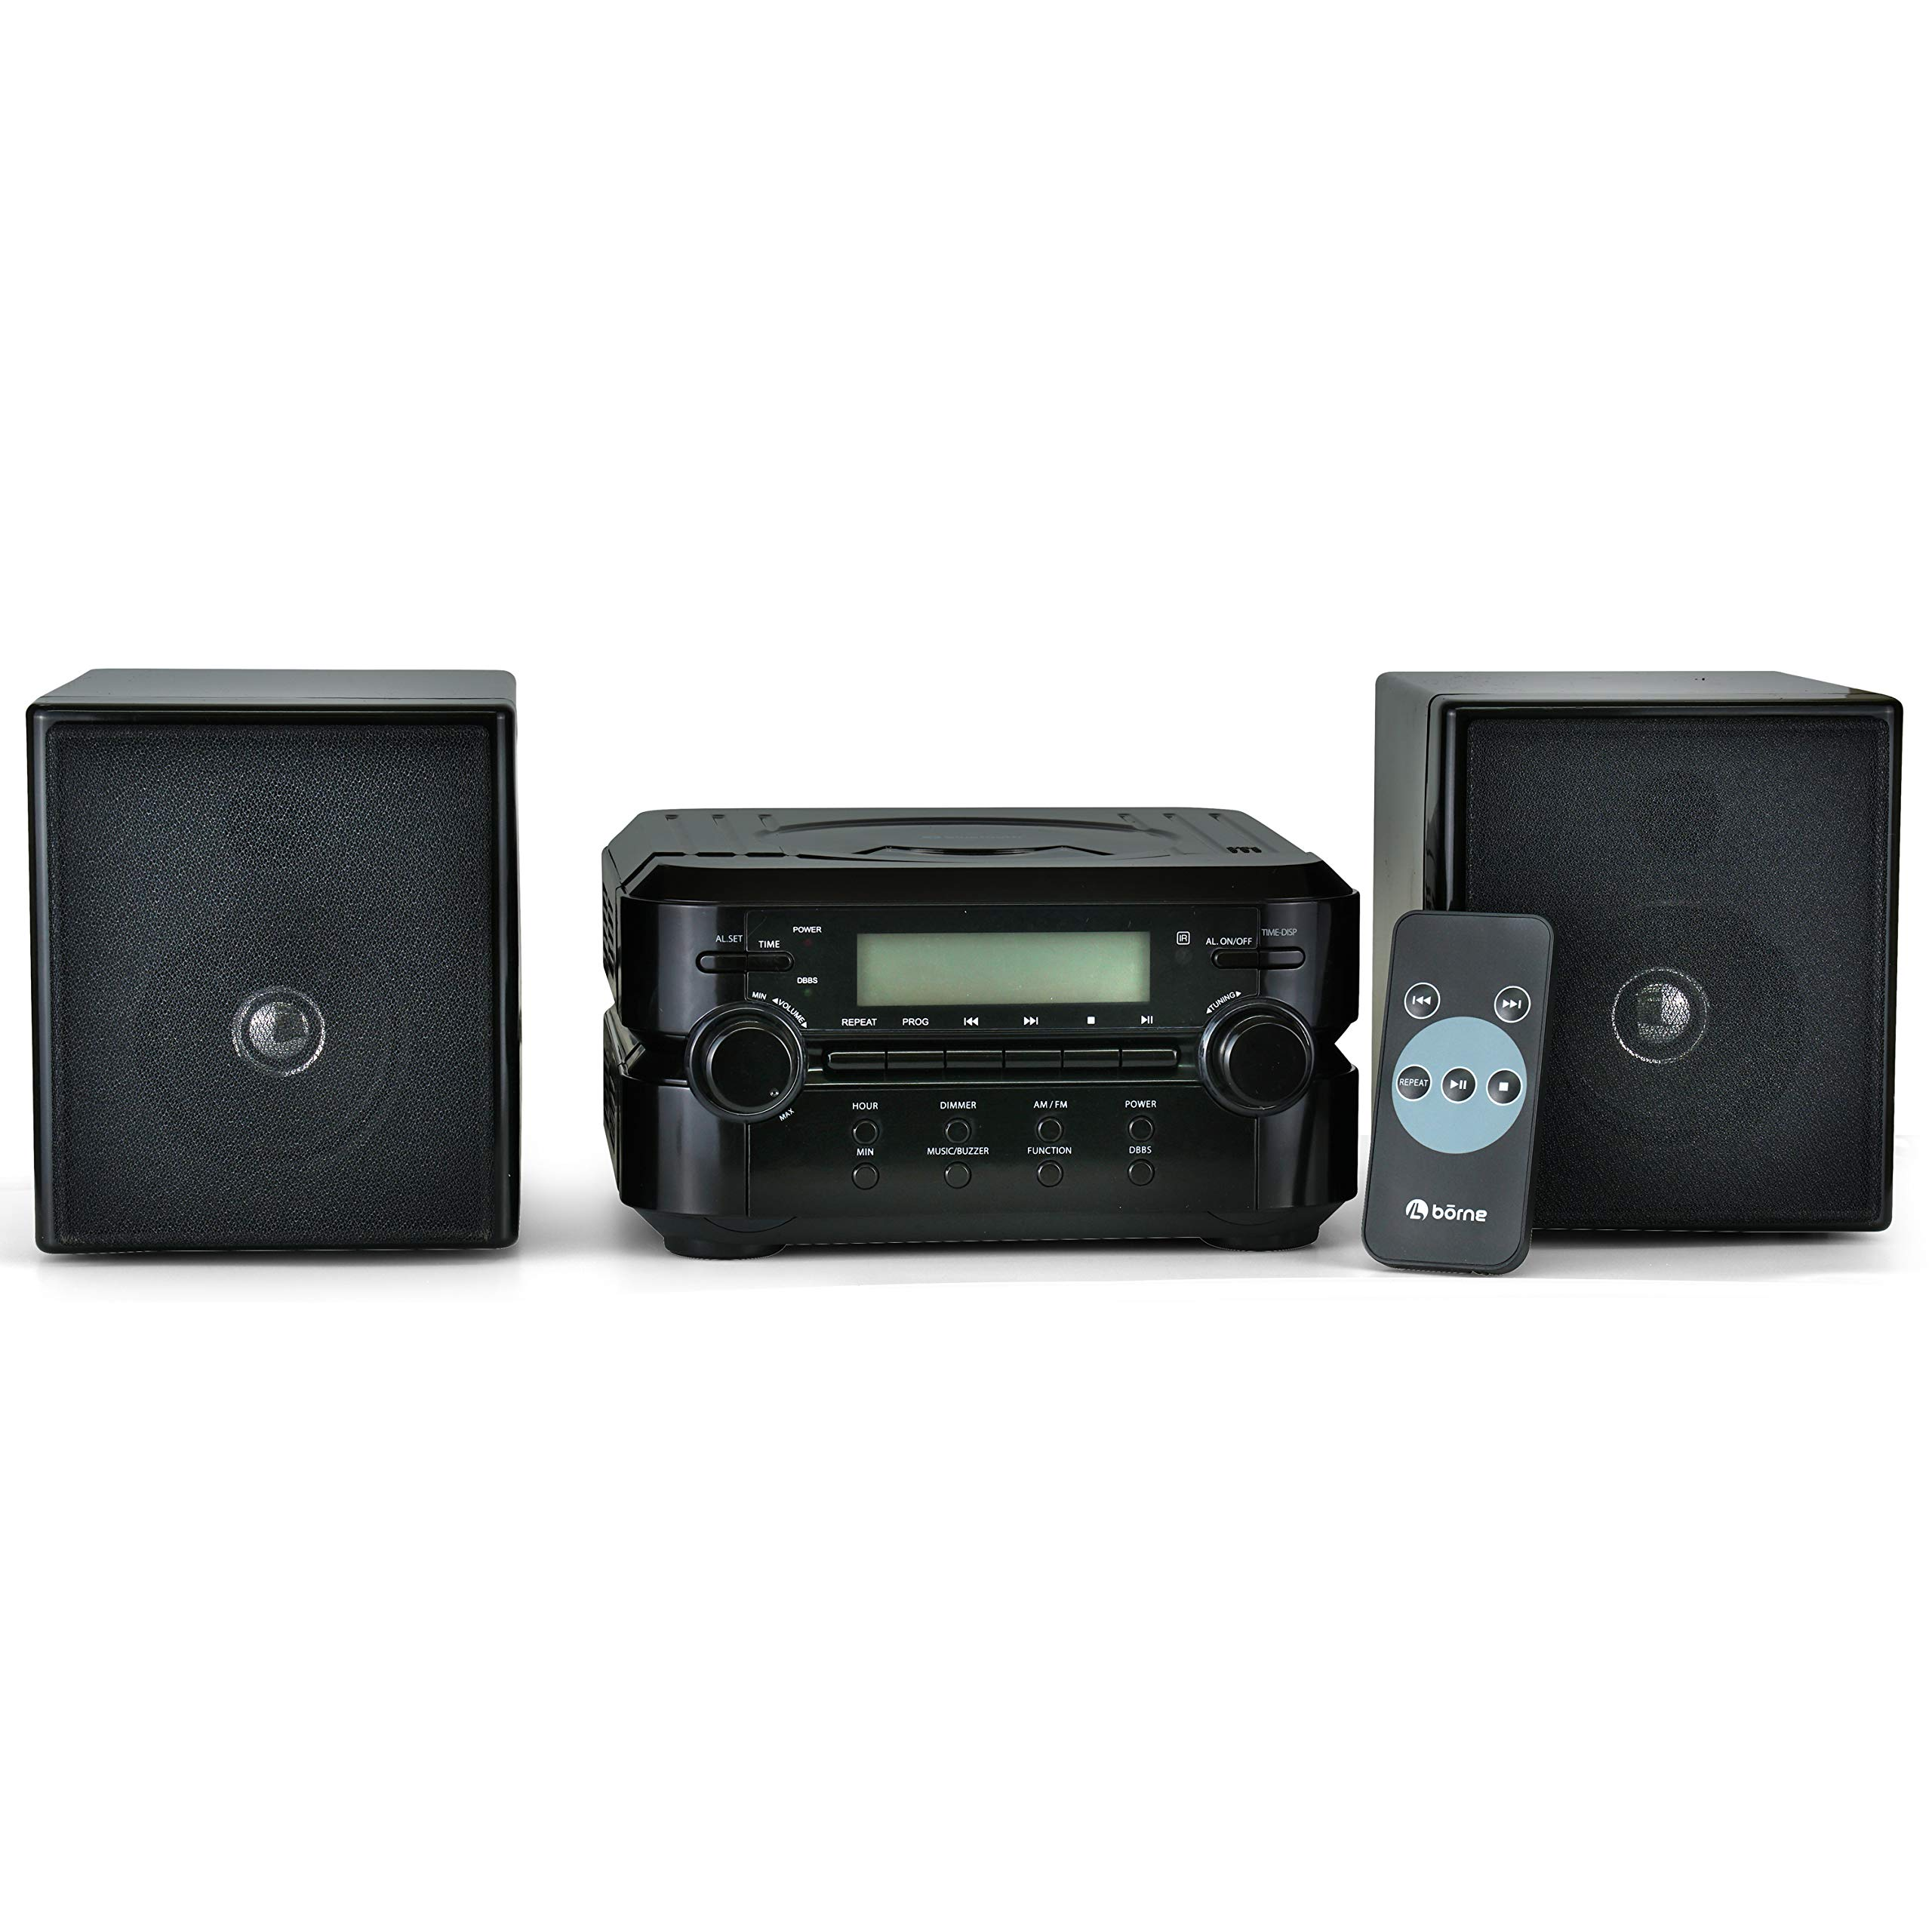 Borne Compact CD Player Stereo Home Music System with Remote AM/FM Tuner Bluetooth Compatible